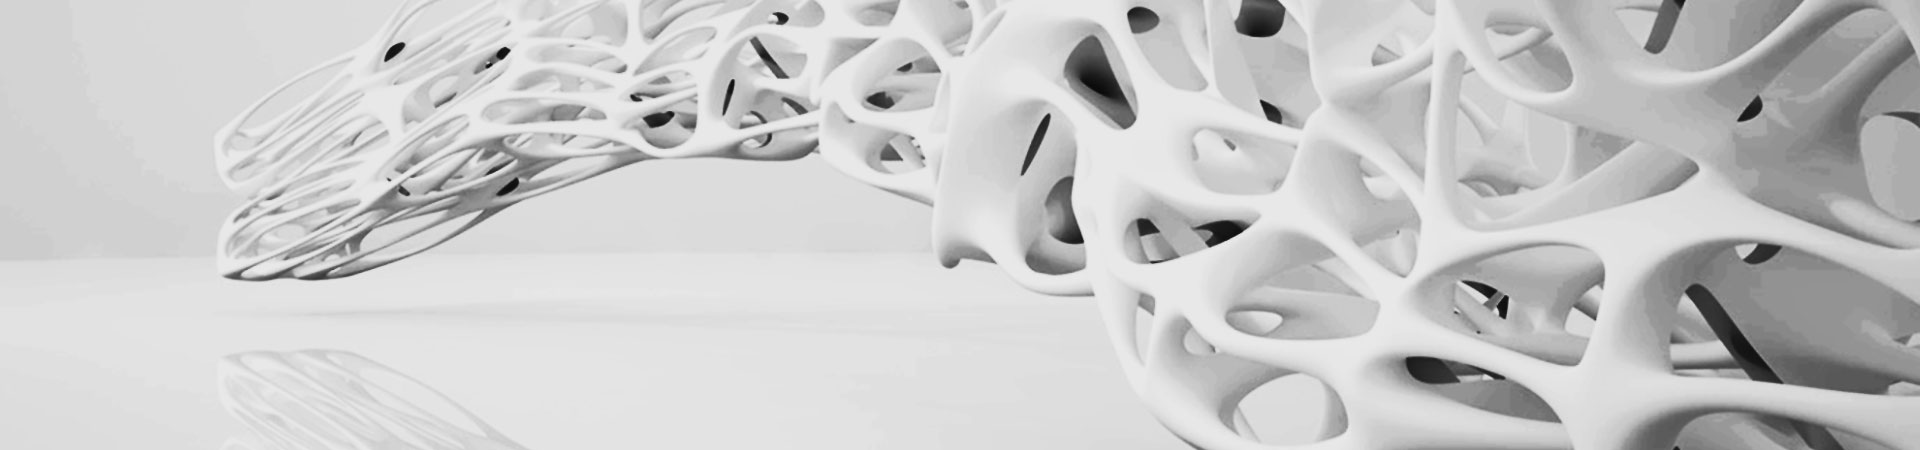 Lightweight Design Structure, Organic Shapes, generative design, derived from topology optimization